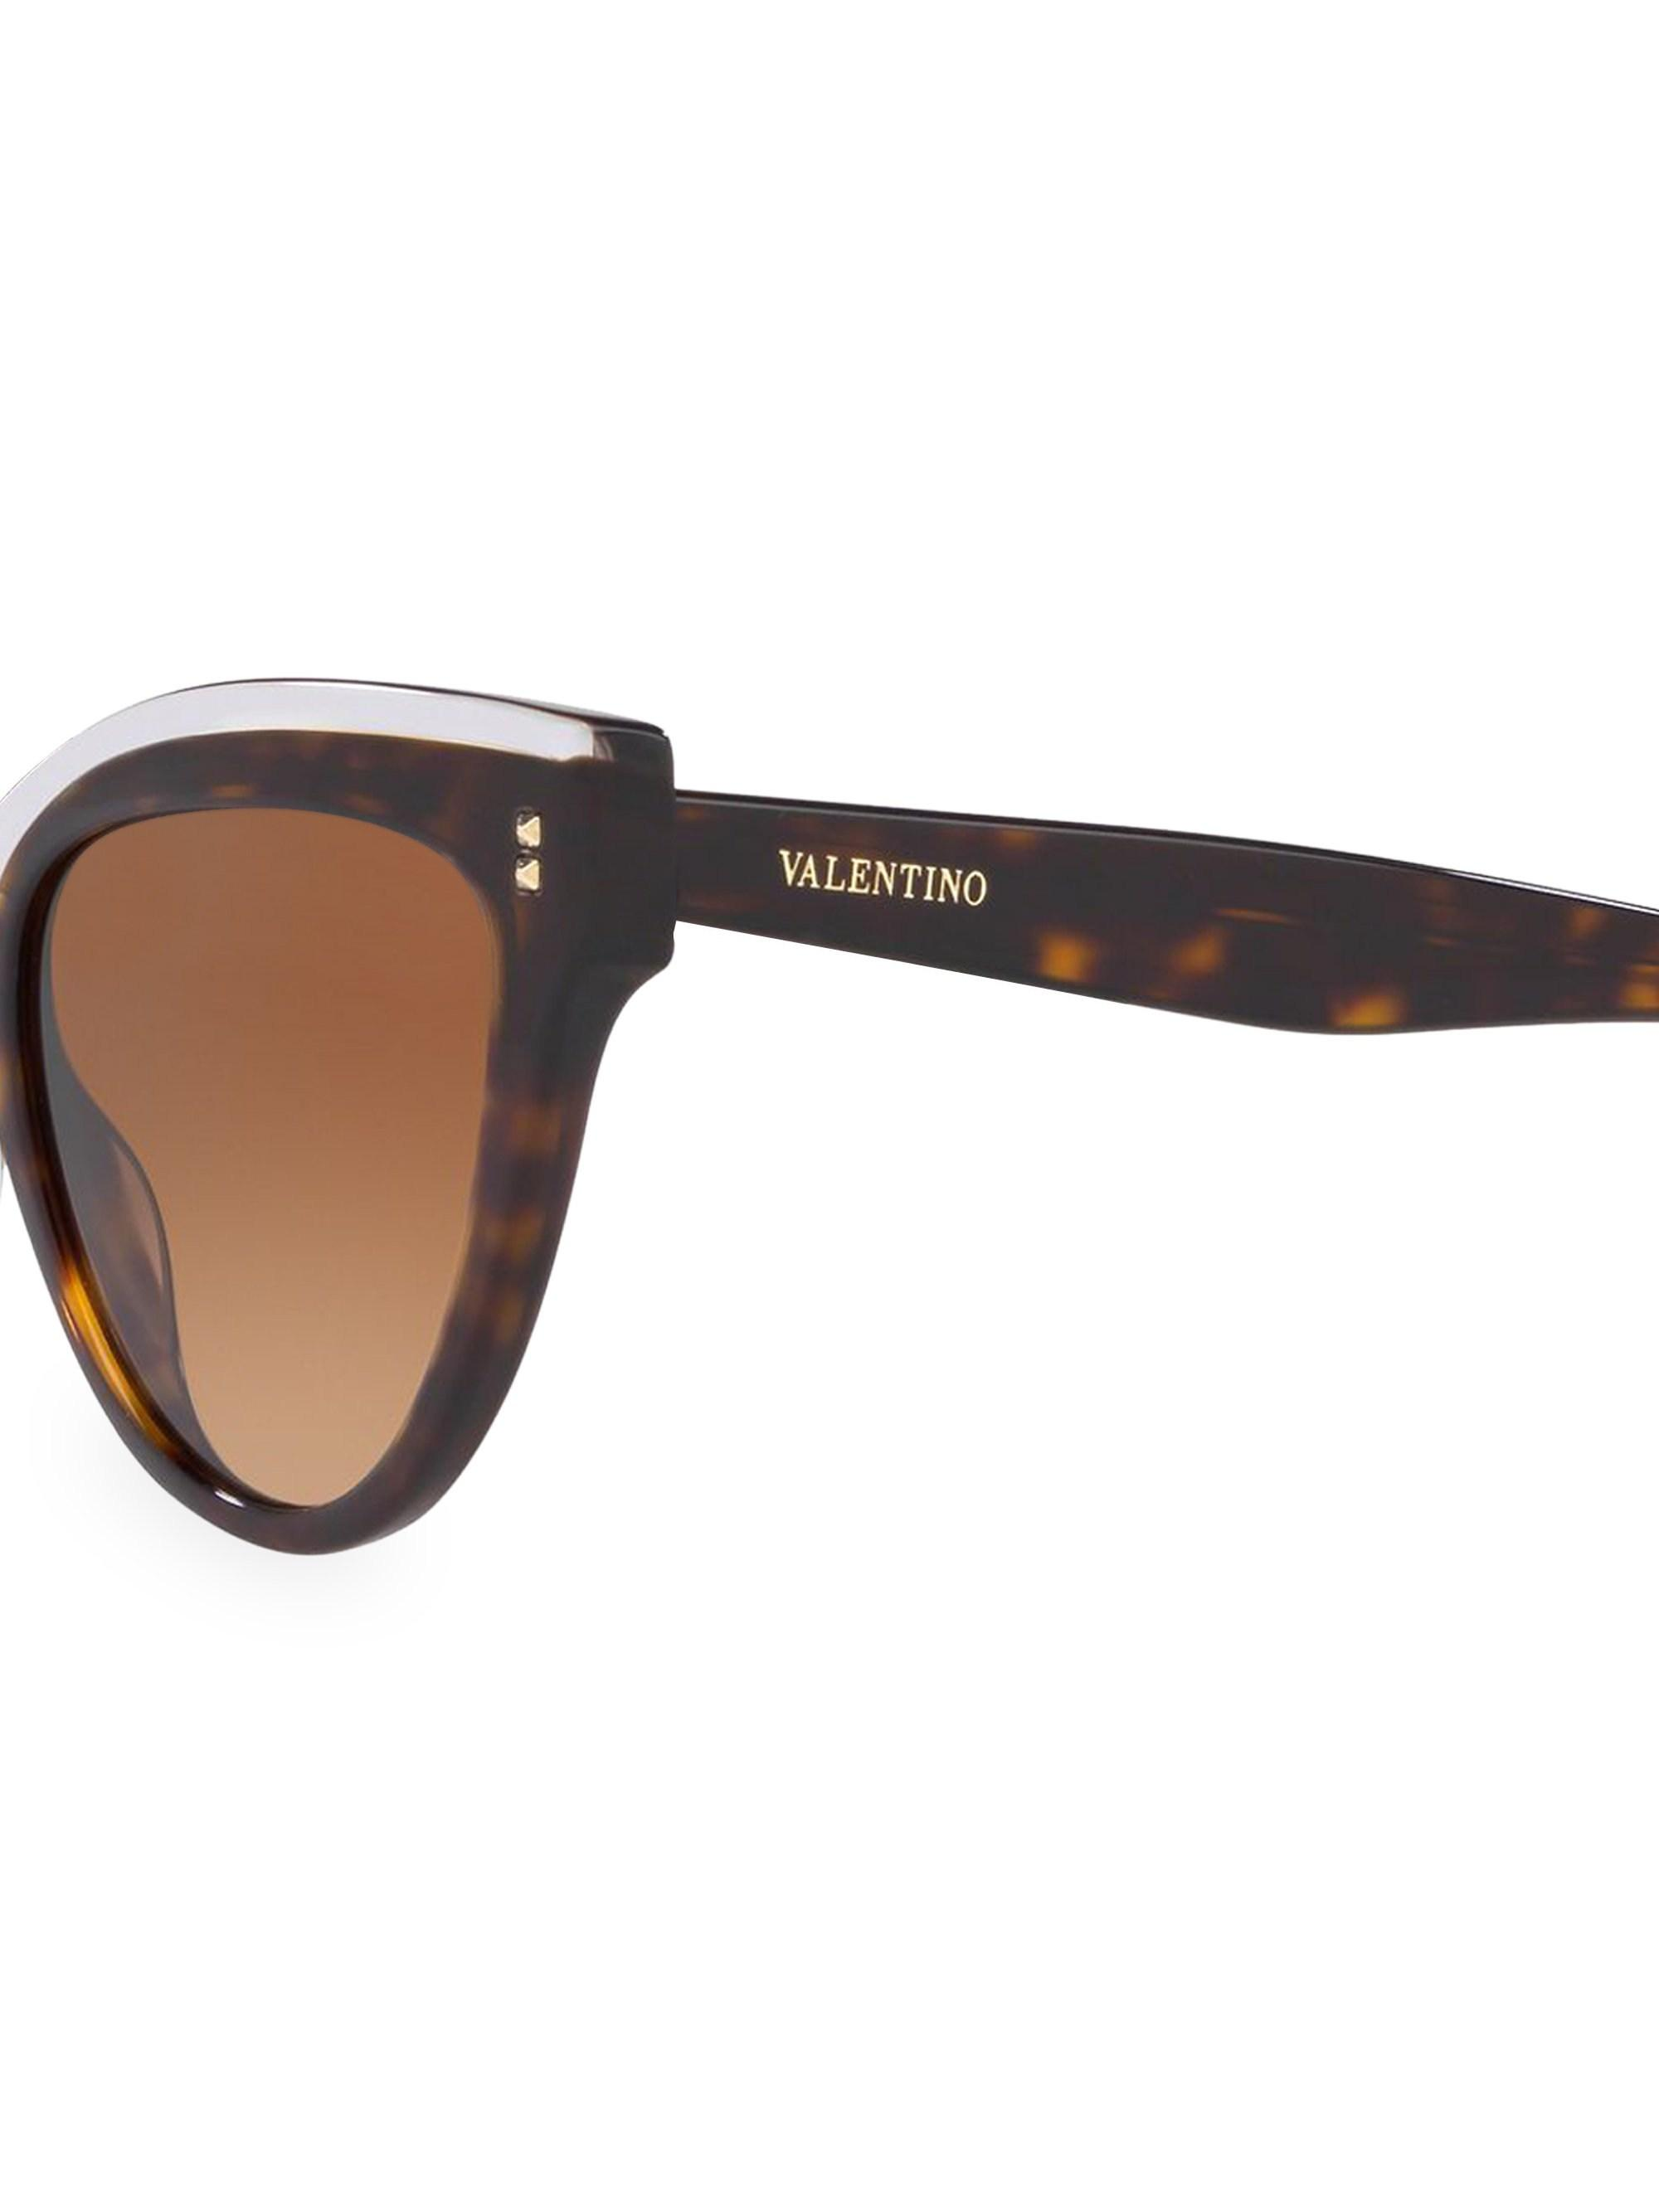 c1d4d49feabef Lyst - Valentino 54mm Havana Cat Eye Sunglasses in Brown